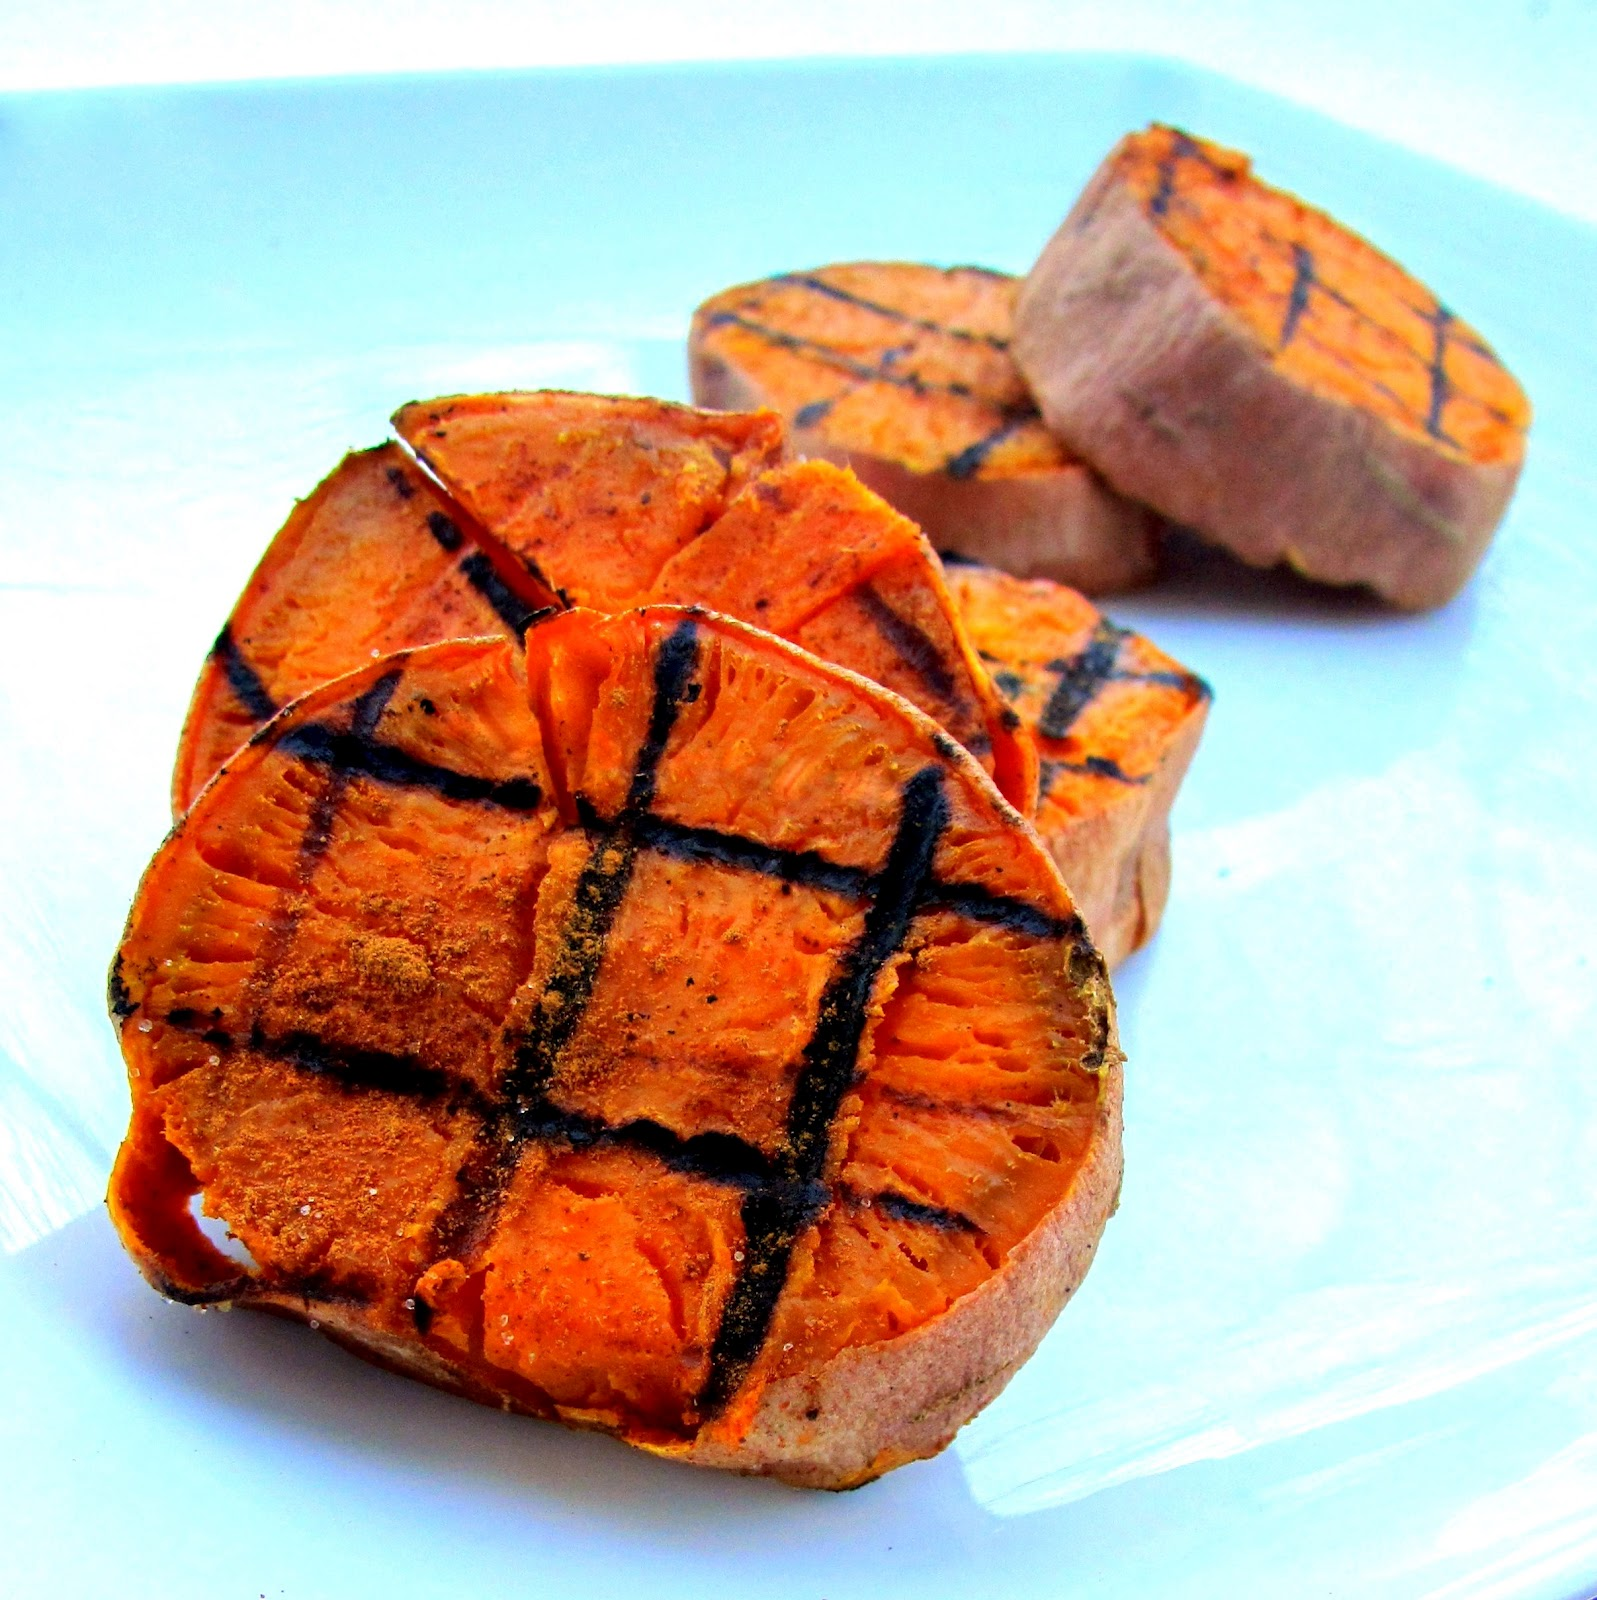 Roasted & GRILLED Sweet Potatoes w HOT as $h!% Habanero Sauce